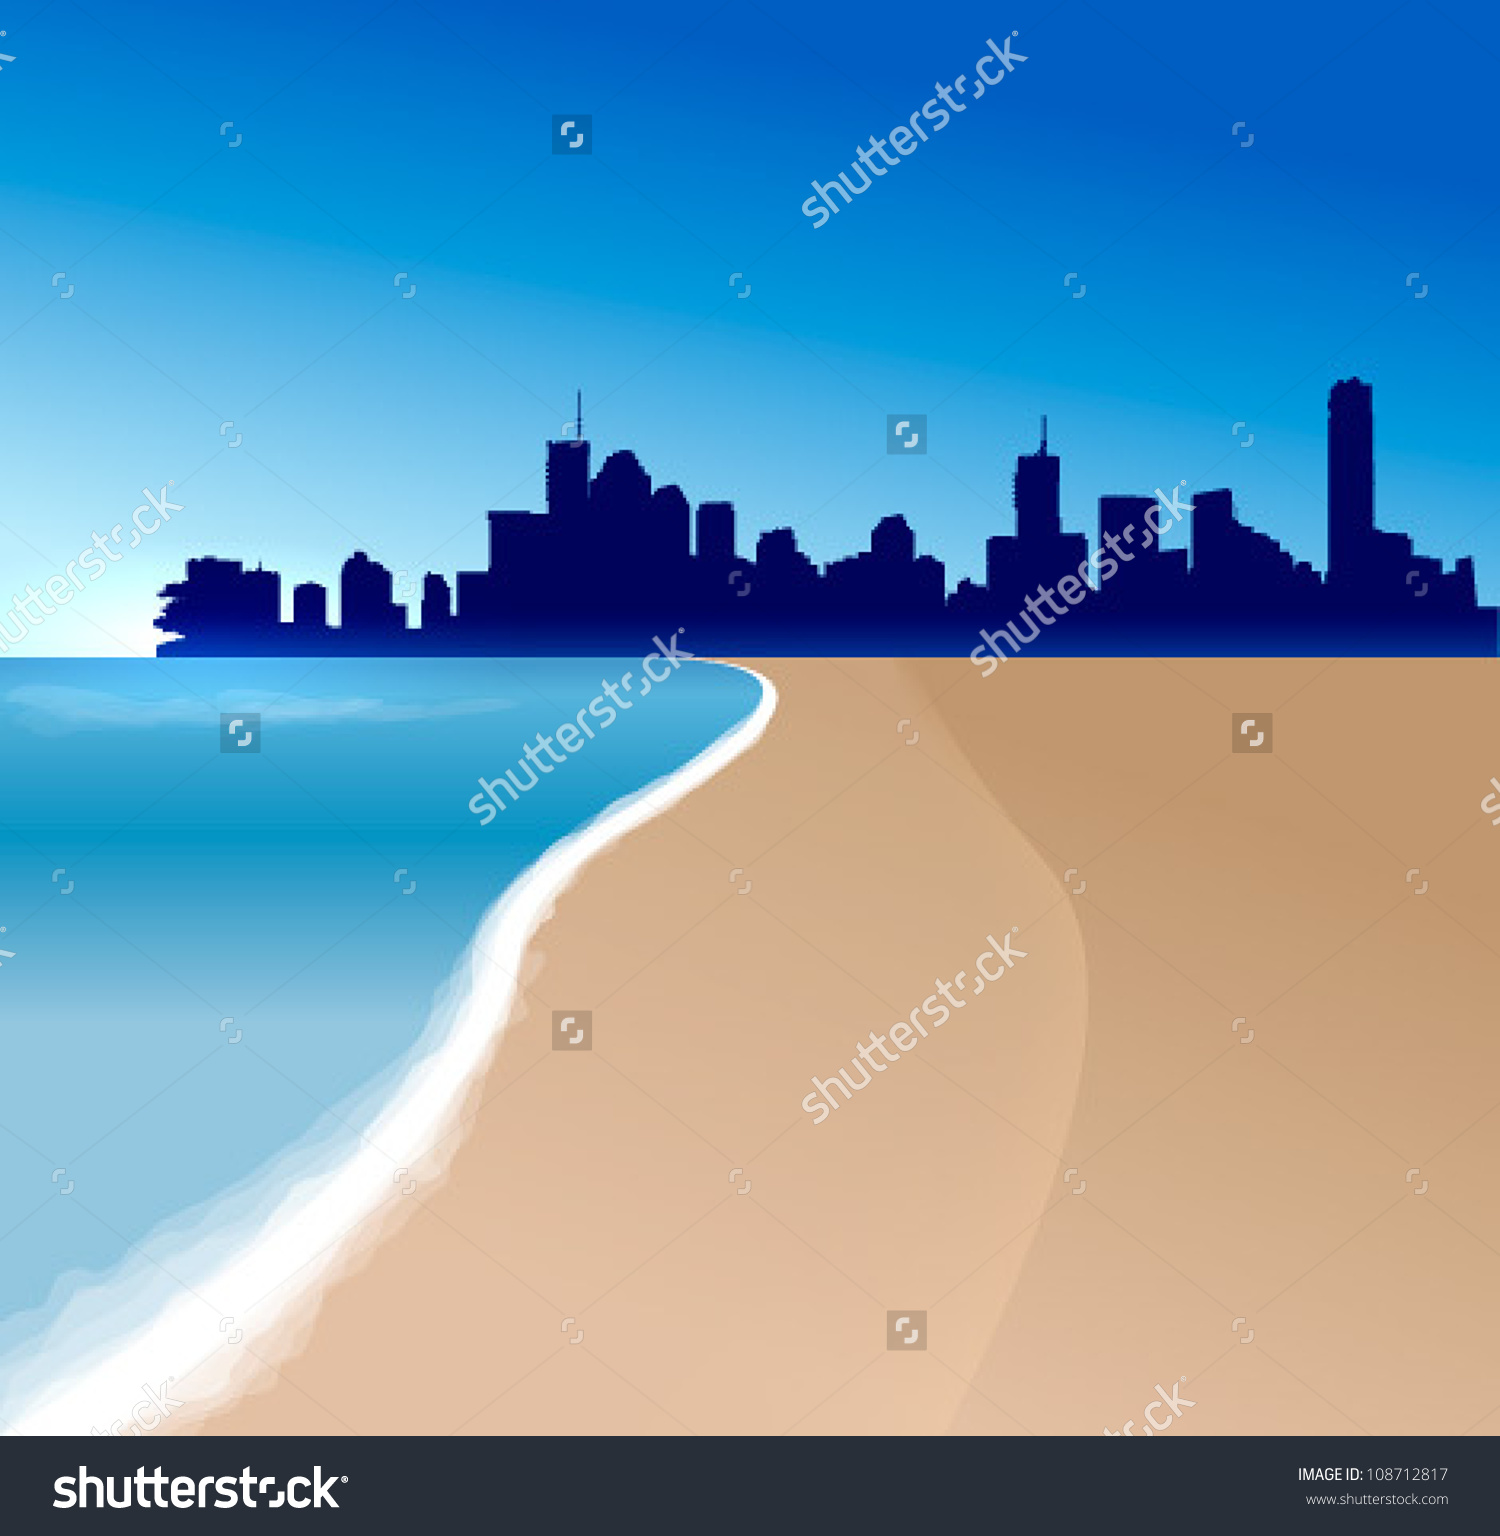 Brisbane Vector Illustration With Beach And Sea.